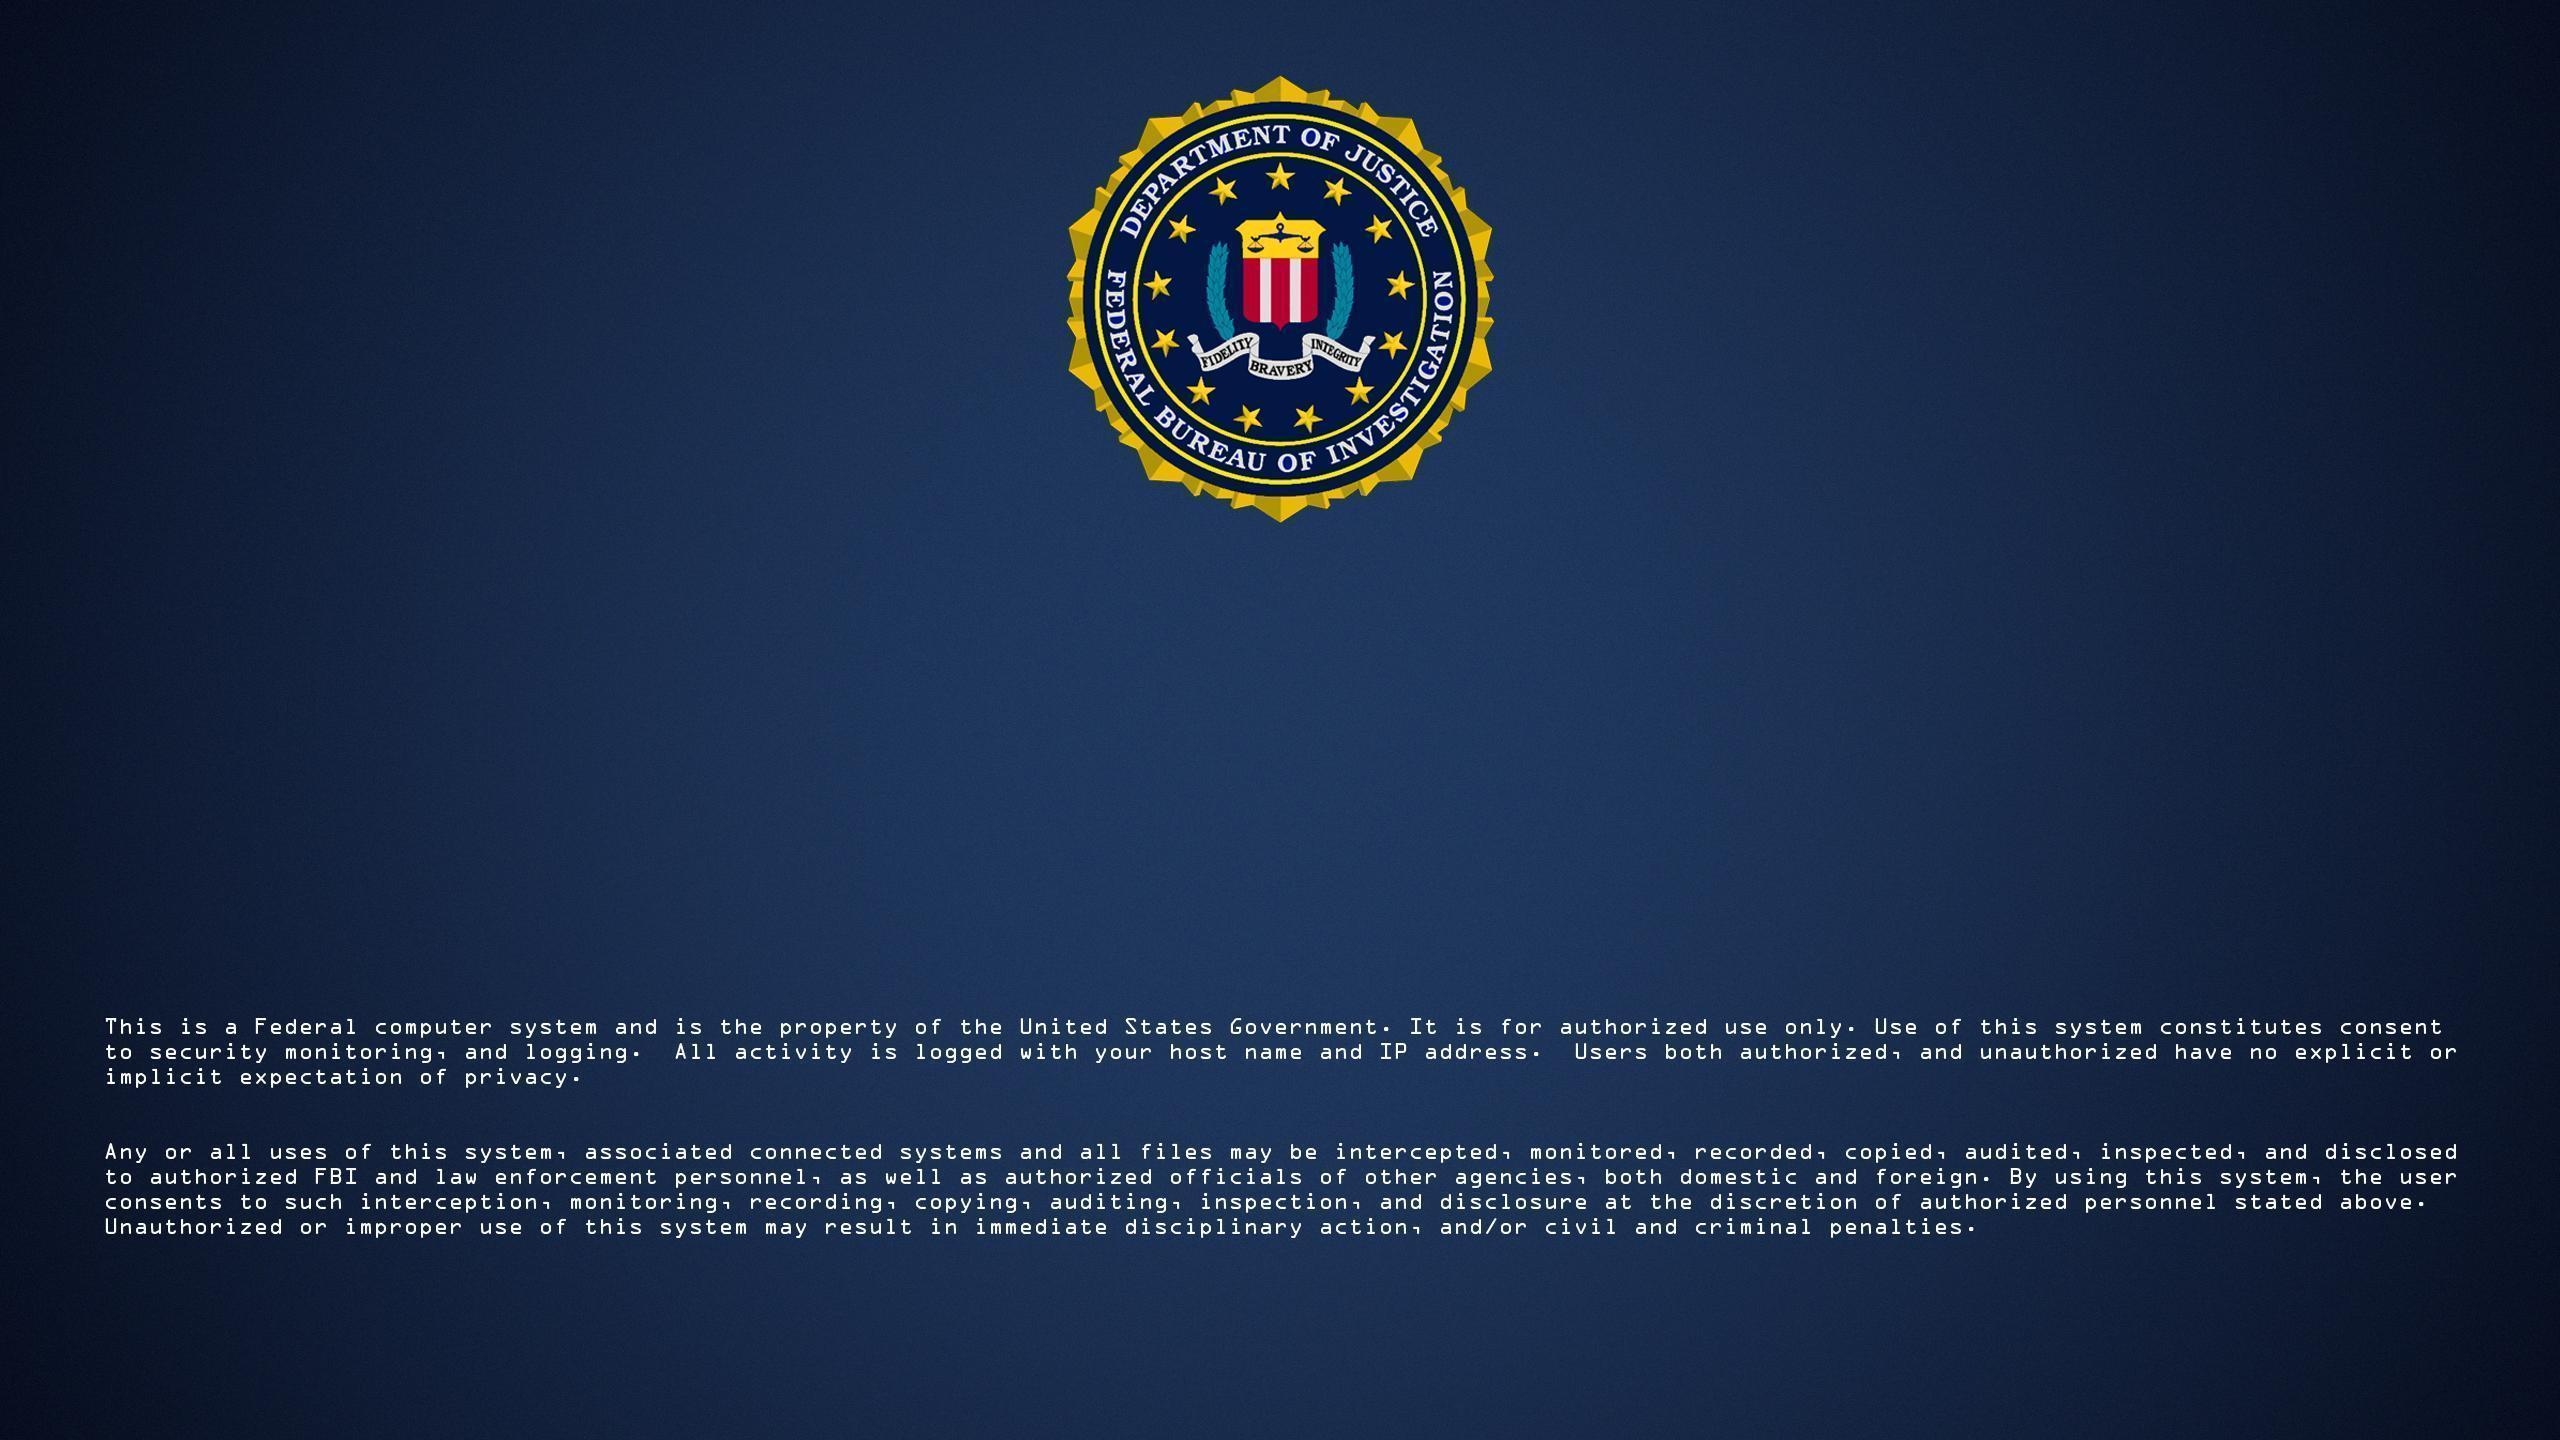 wallpapers fbi wall - photo #11